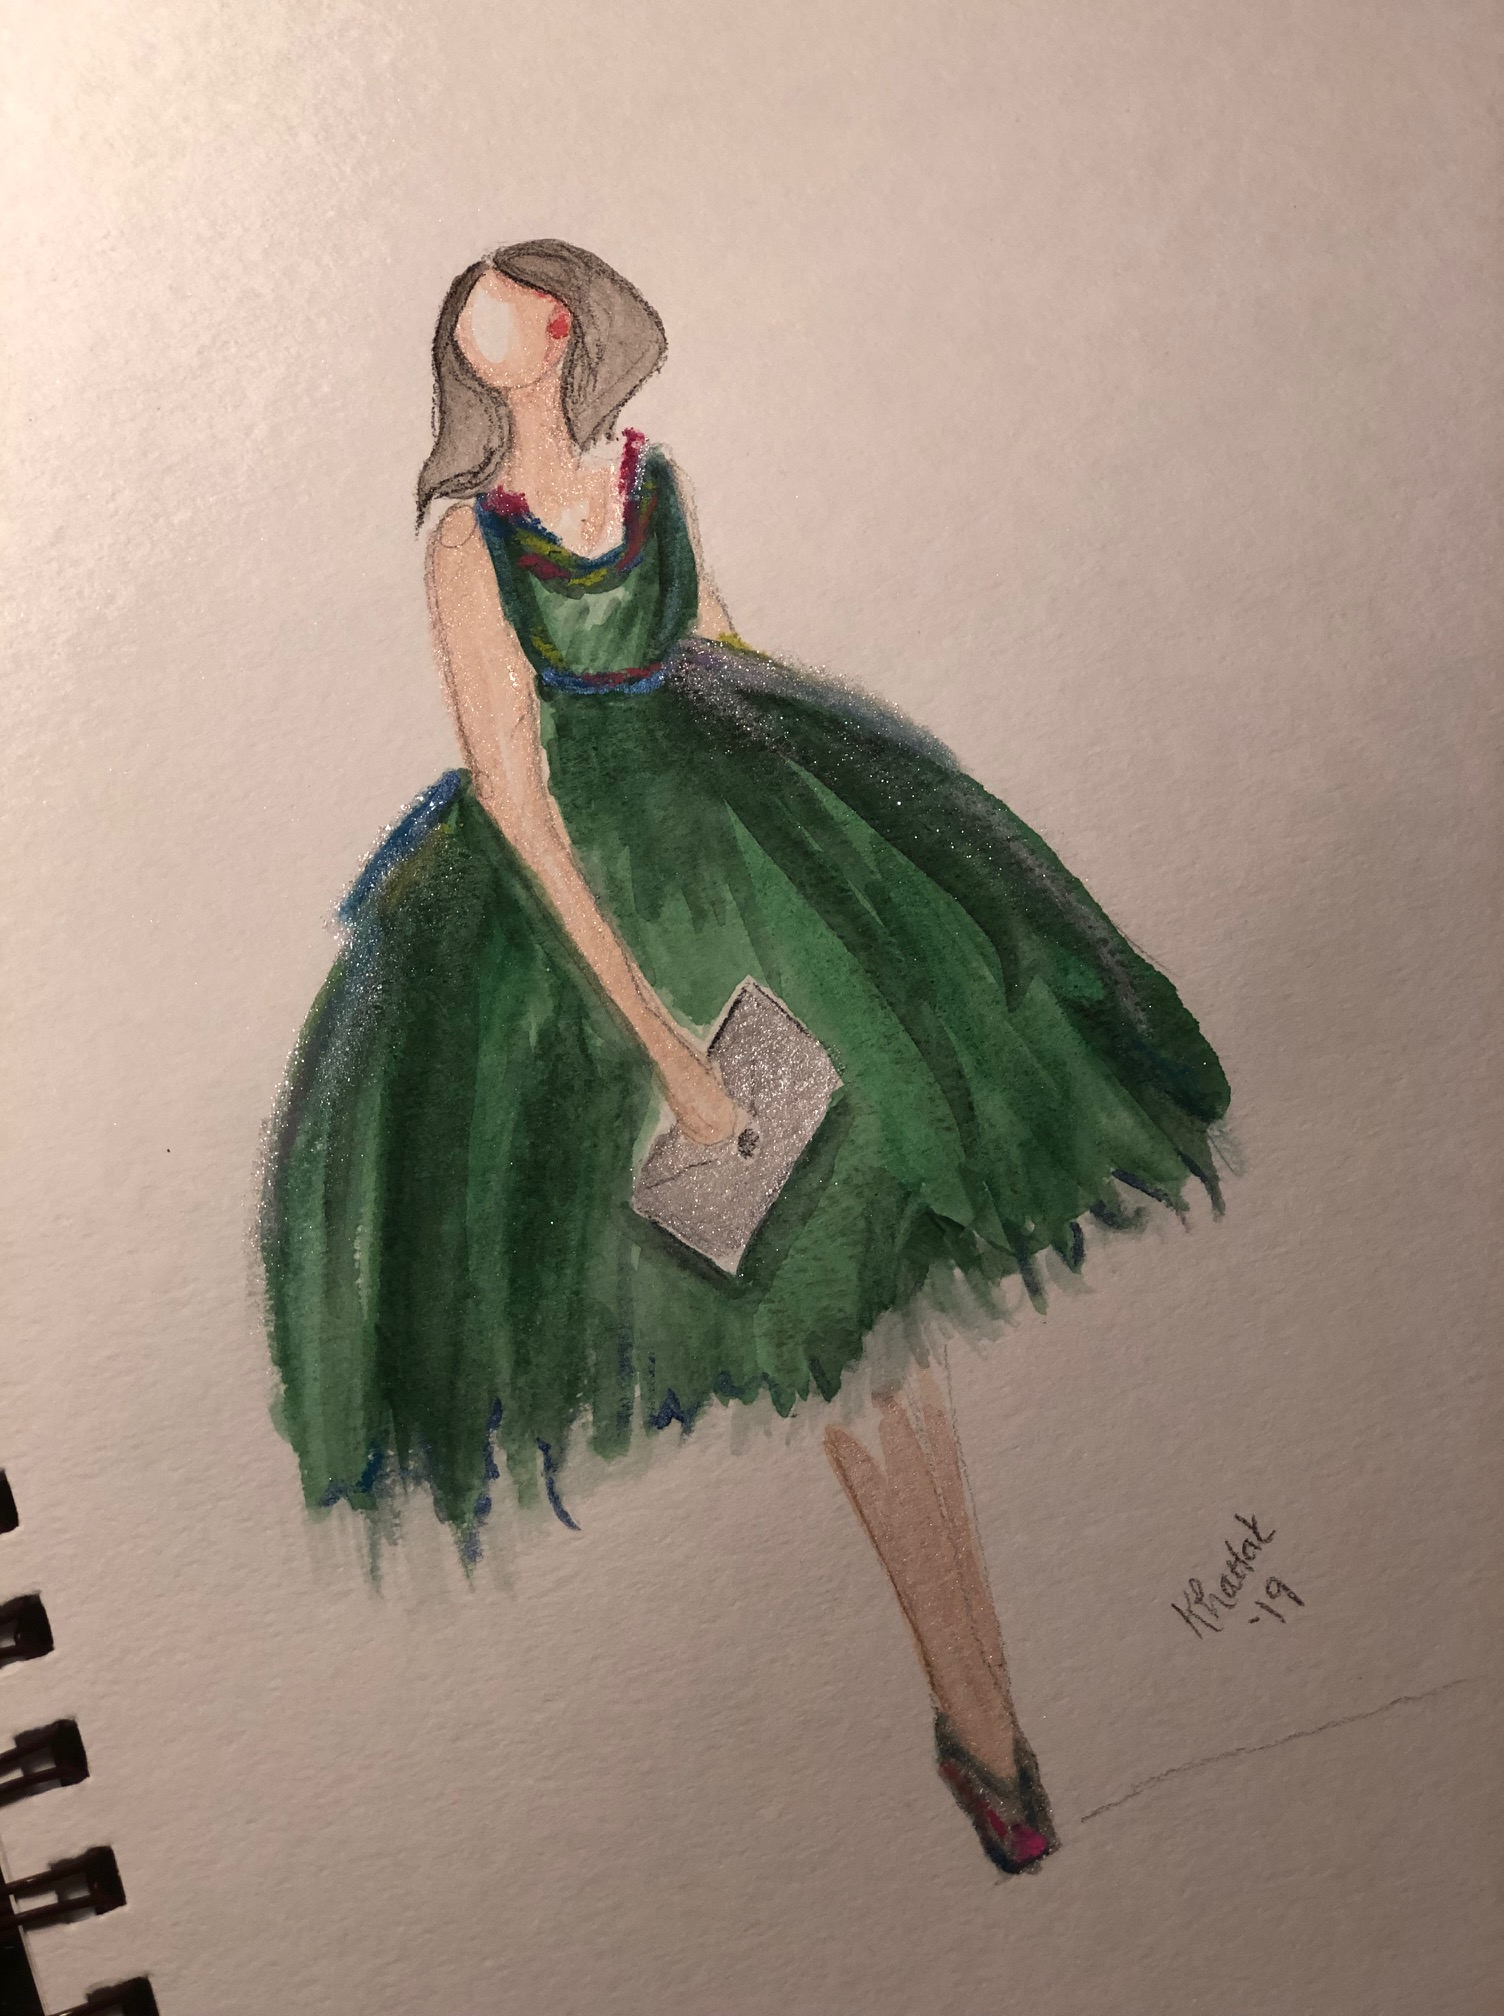 Girl in Green Dress